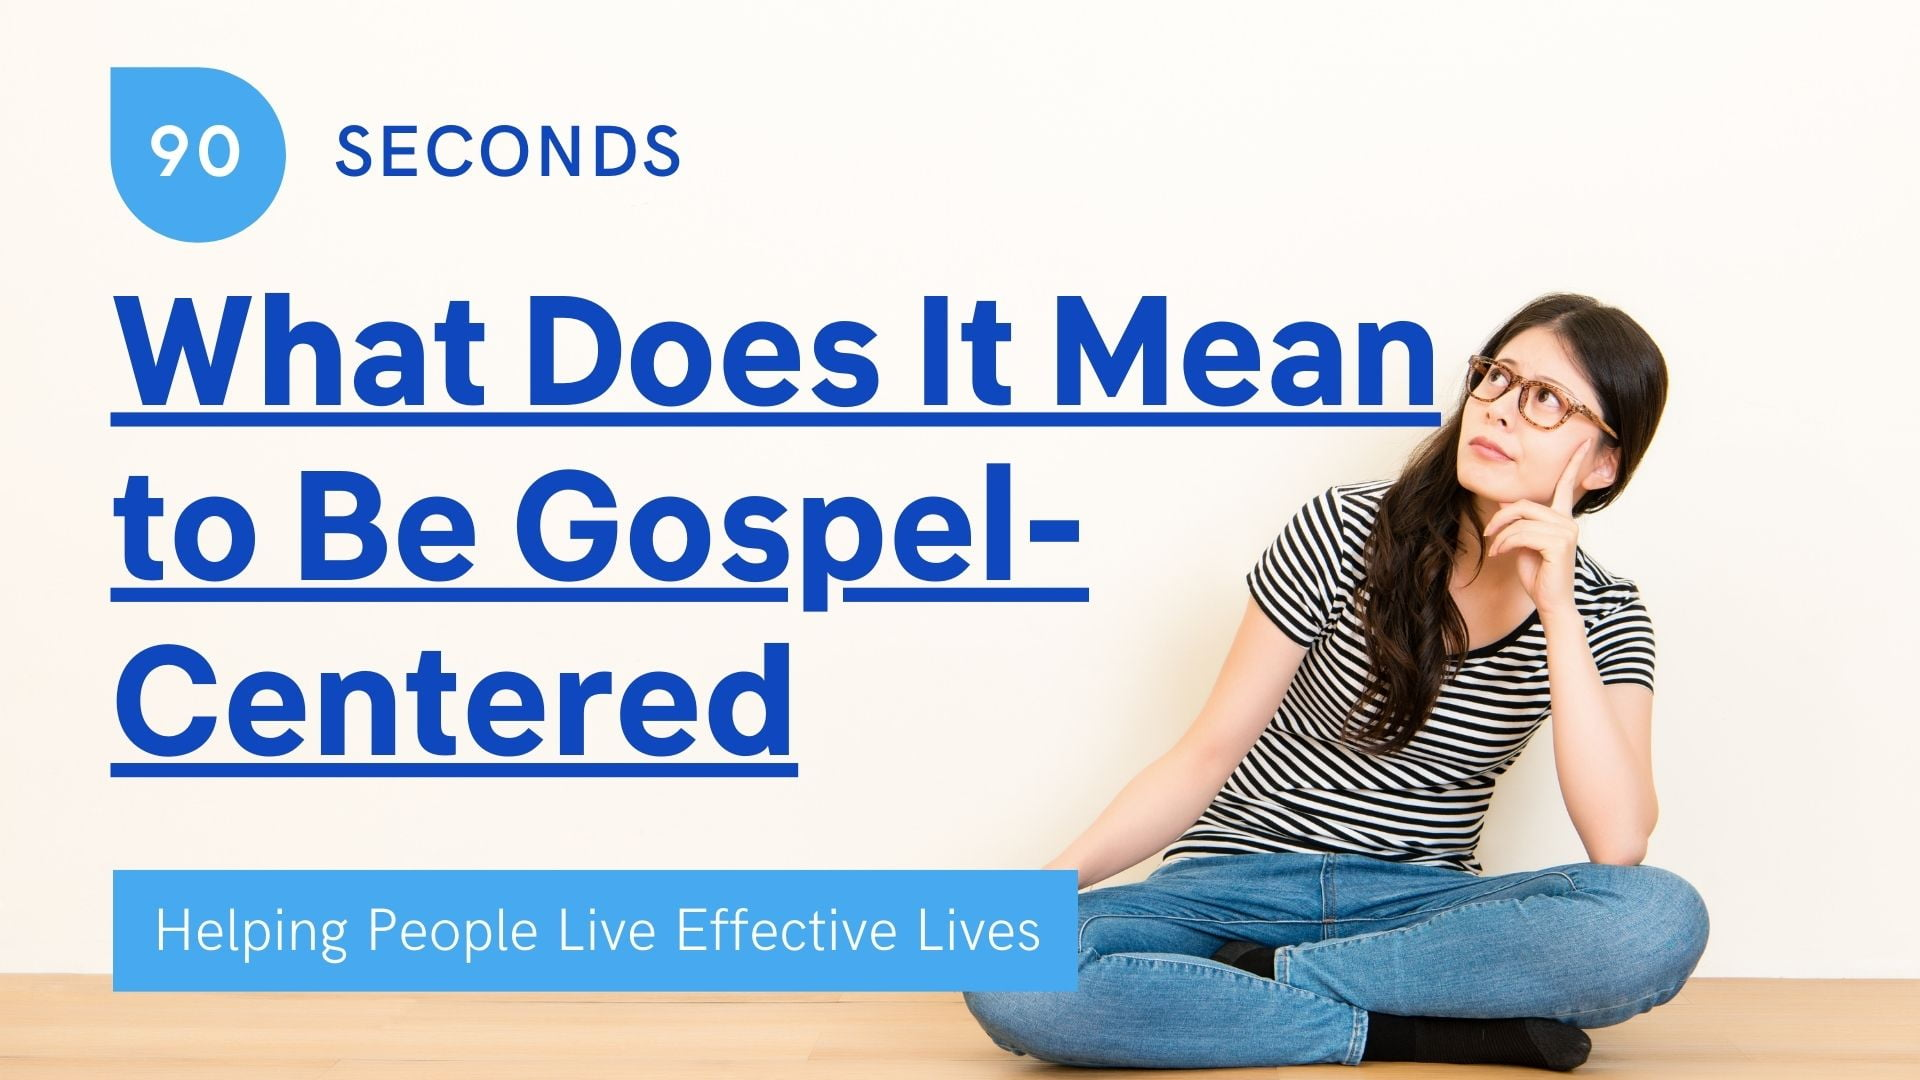 90-Seconds_ What Does It Mean to Be Gospel-Centered